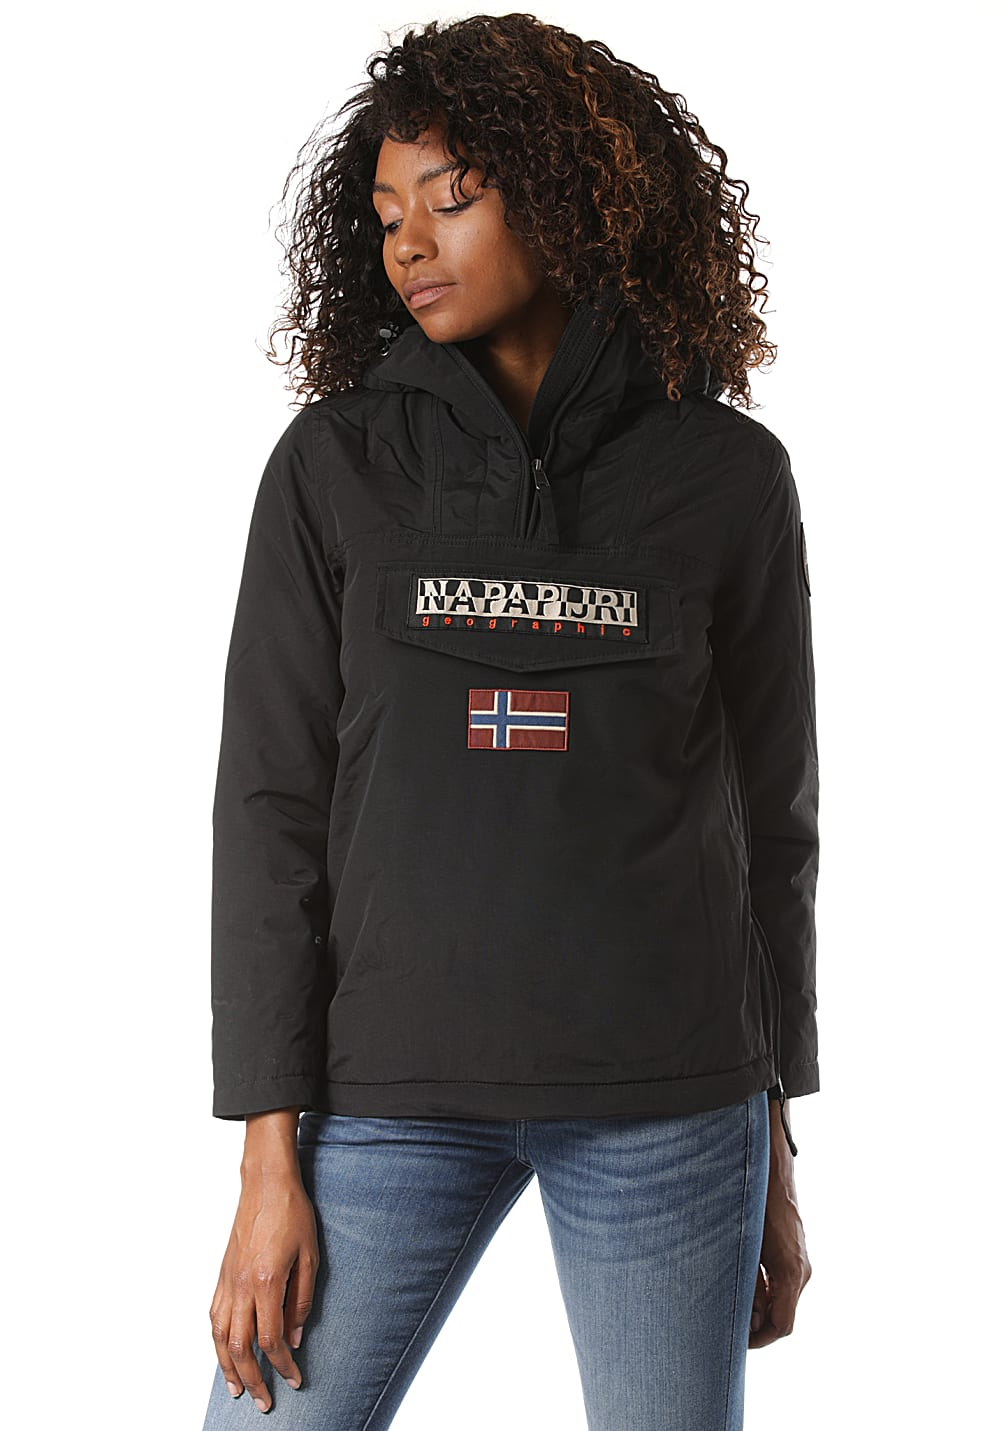 Jacken für Frauen - Napapijri Rainforest Winter 3 Jacke für Damen Schwarz  - Onlineshop Planet Sports